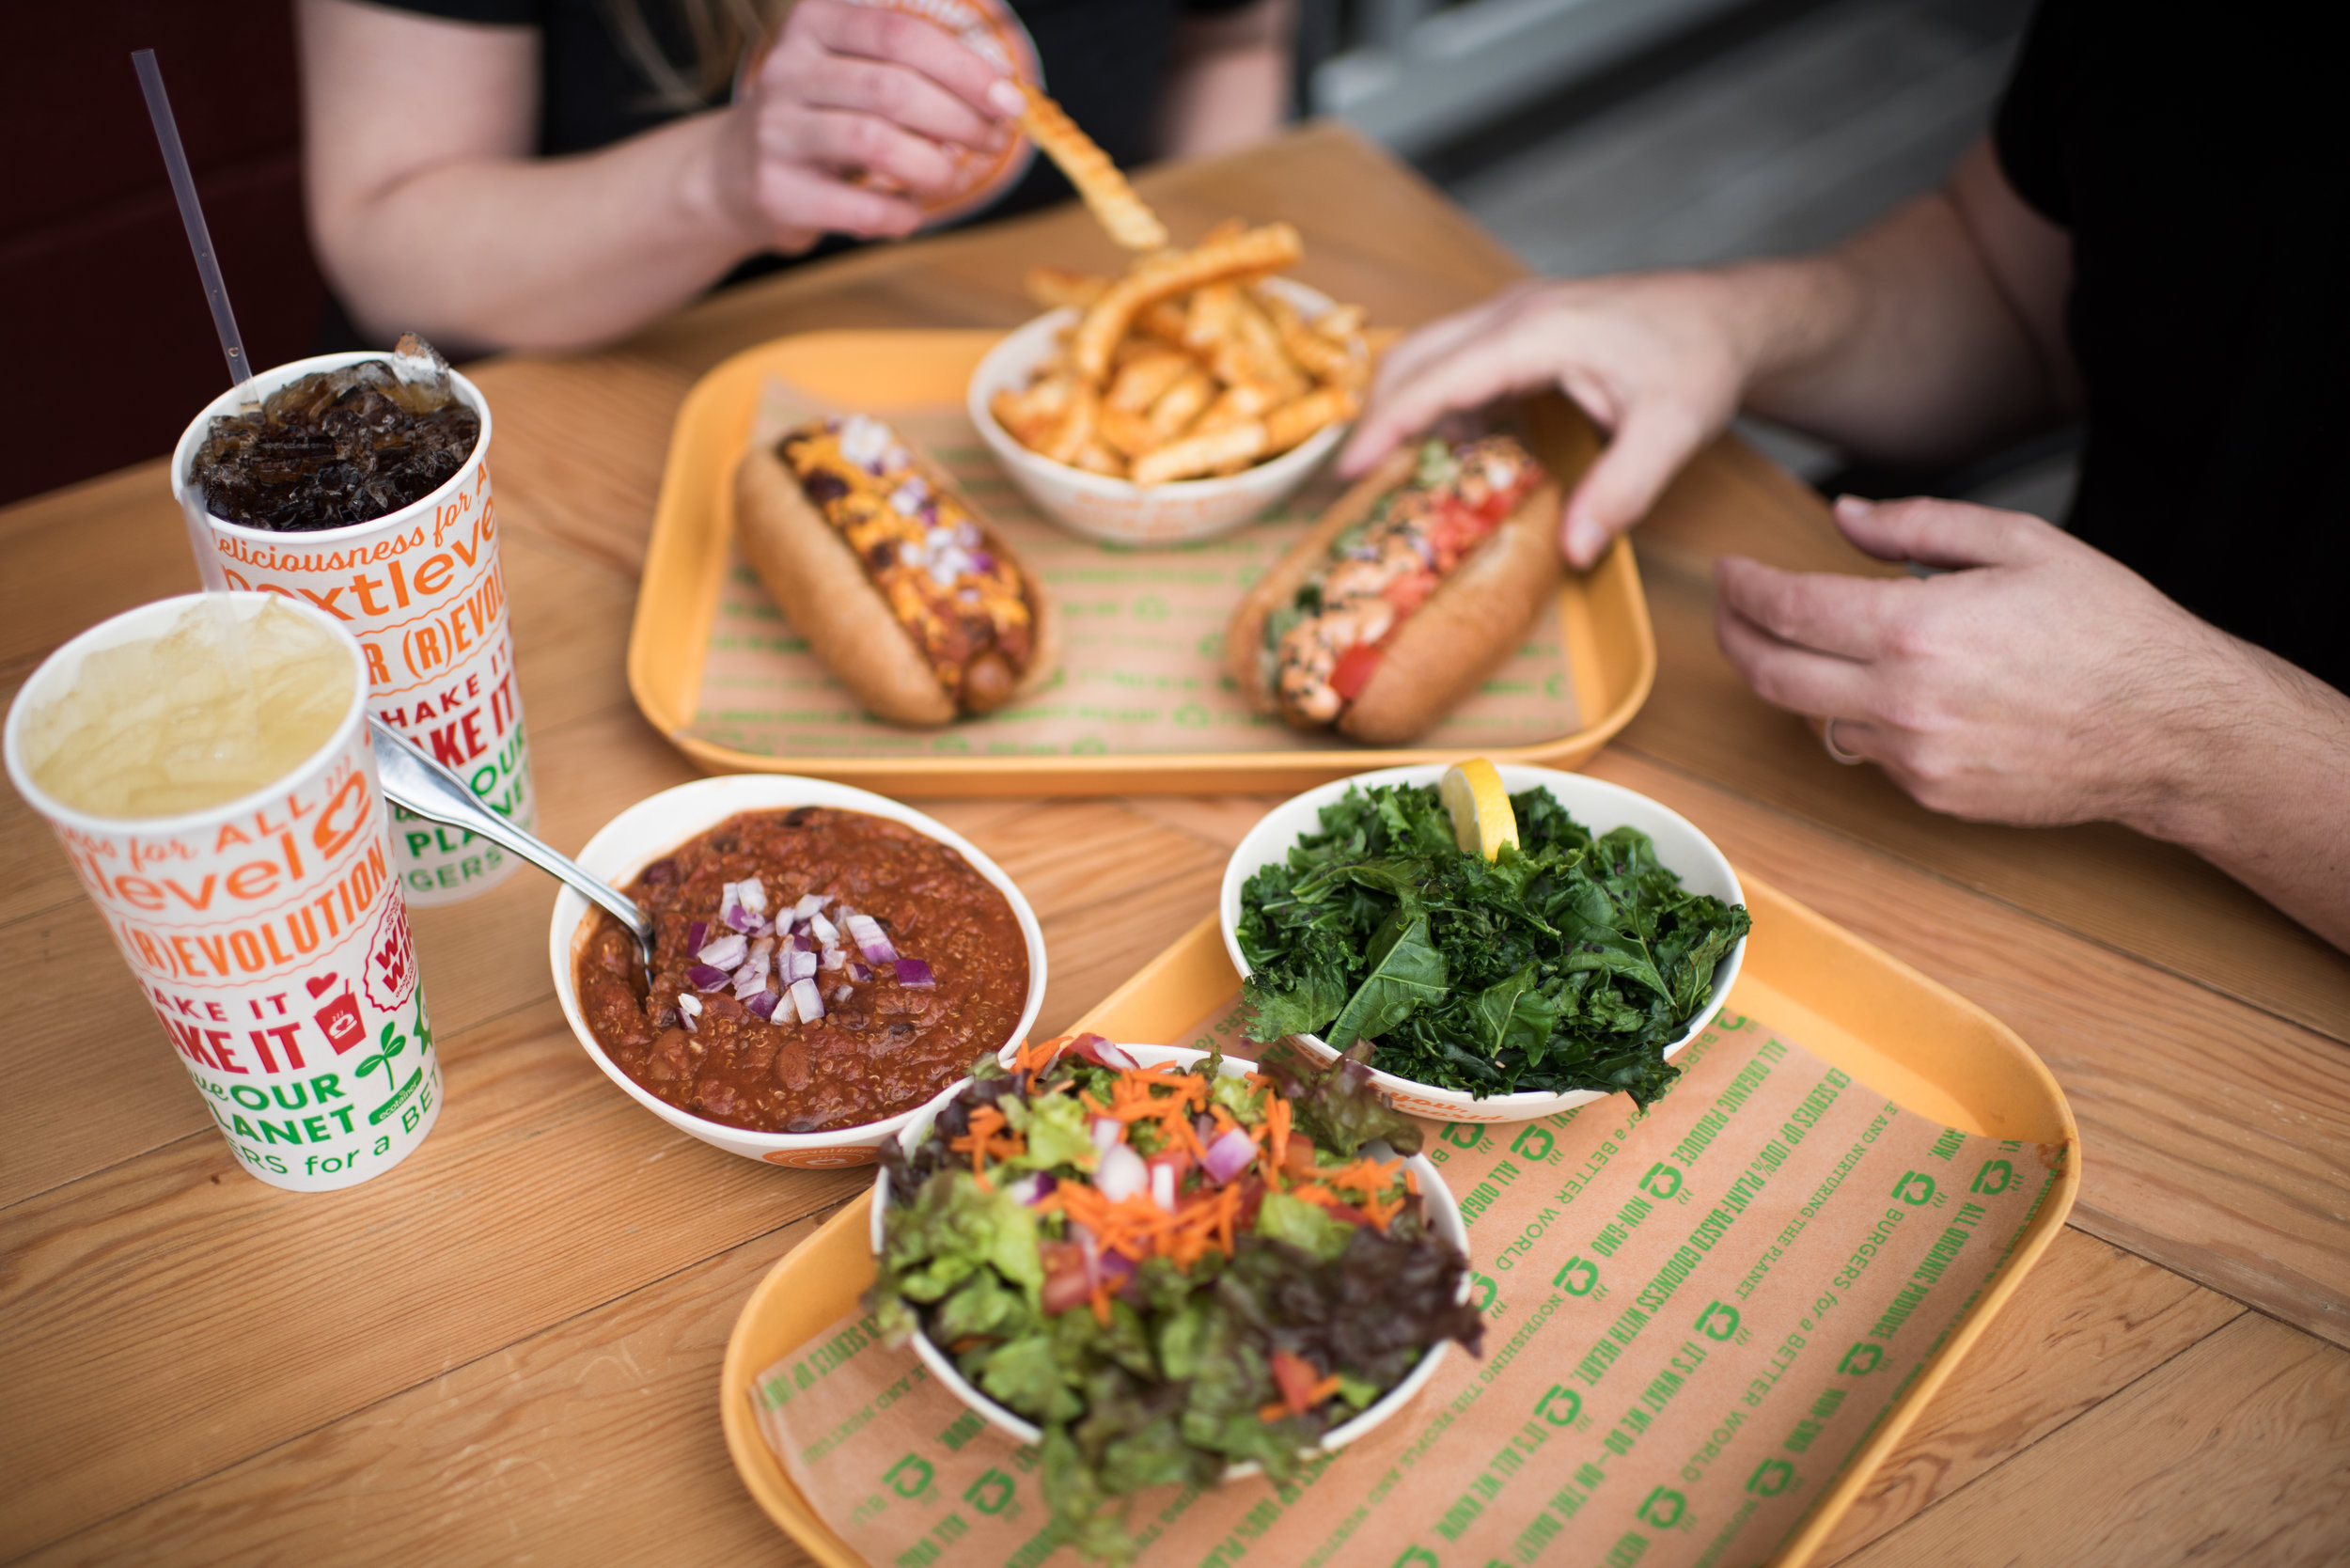 NLB's 100% plant-based foods include burgers, hot dogs, sandwiches, and more.